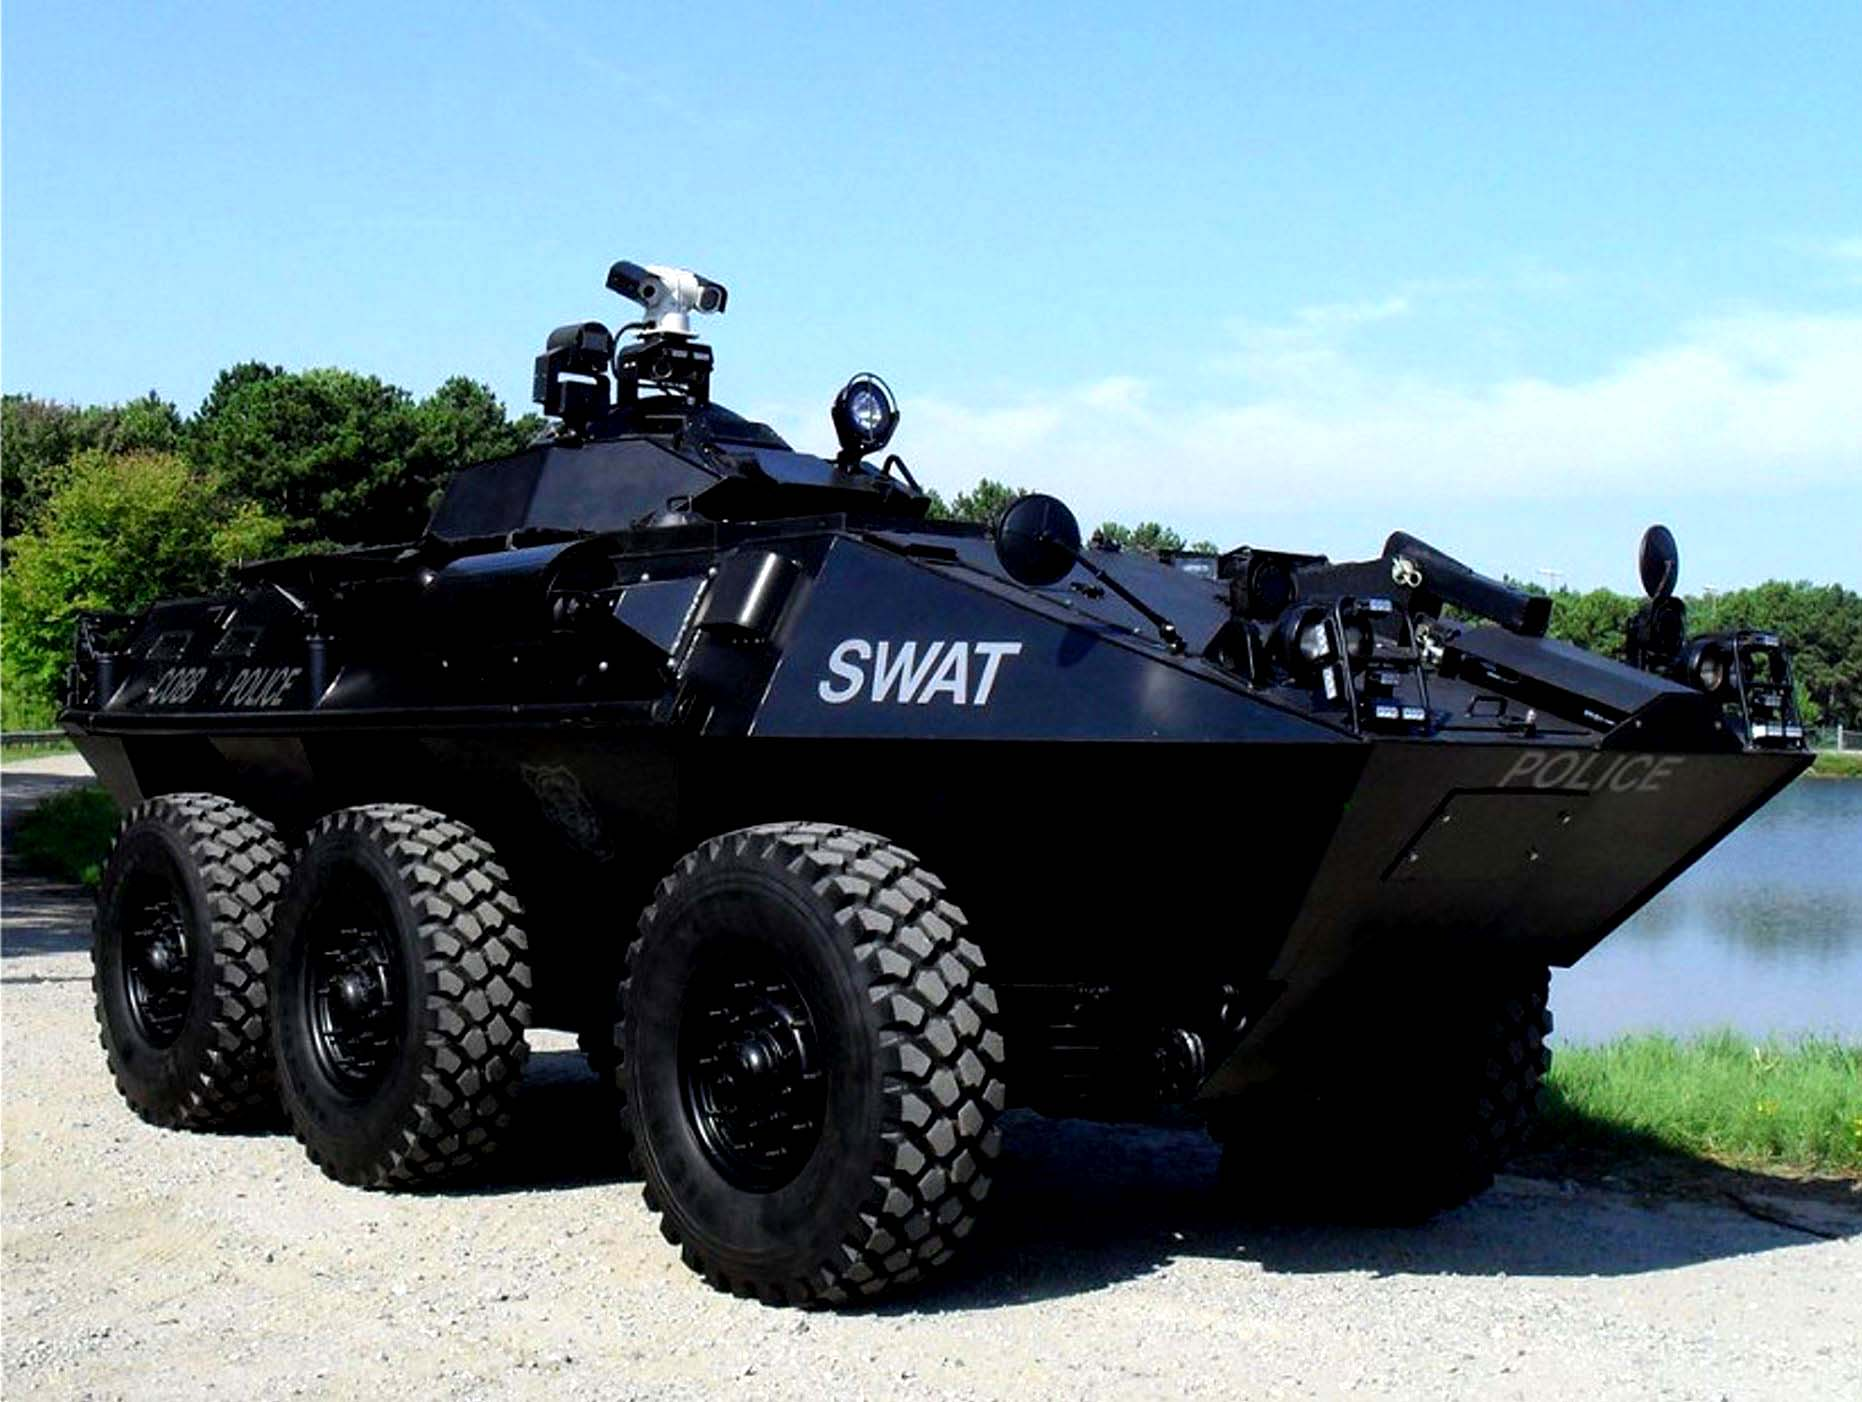 Cars For Sale Los Angeles >> Swat Vehicles – MEGA